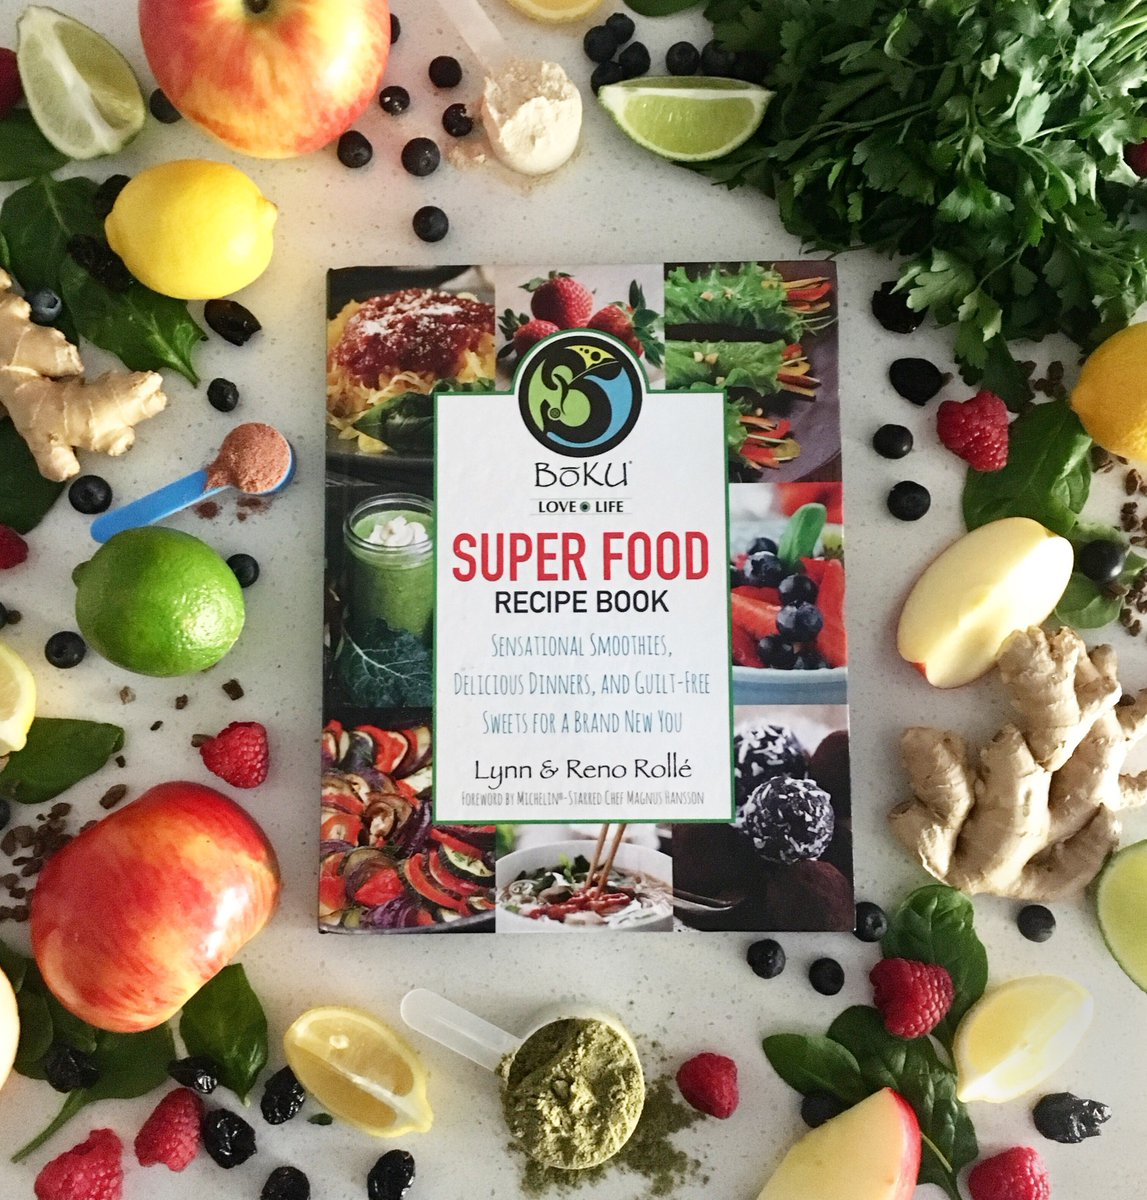 Boku superfood on twitter the must have bokusuperfood recipe book boku superfood on twitter the must have bokusuperfood recipe book is on sale for only 1699 just in time for eating your best in 2018 forumfinder Image collections